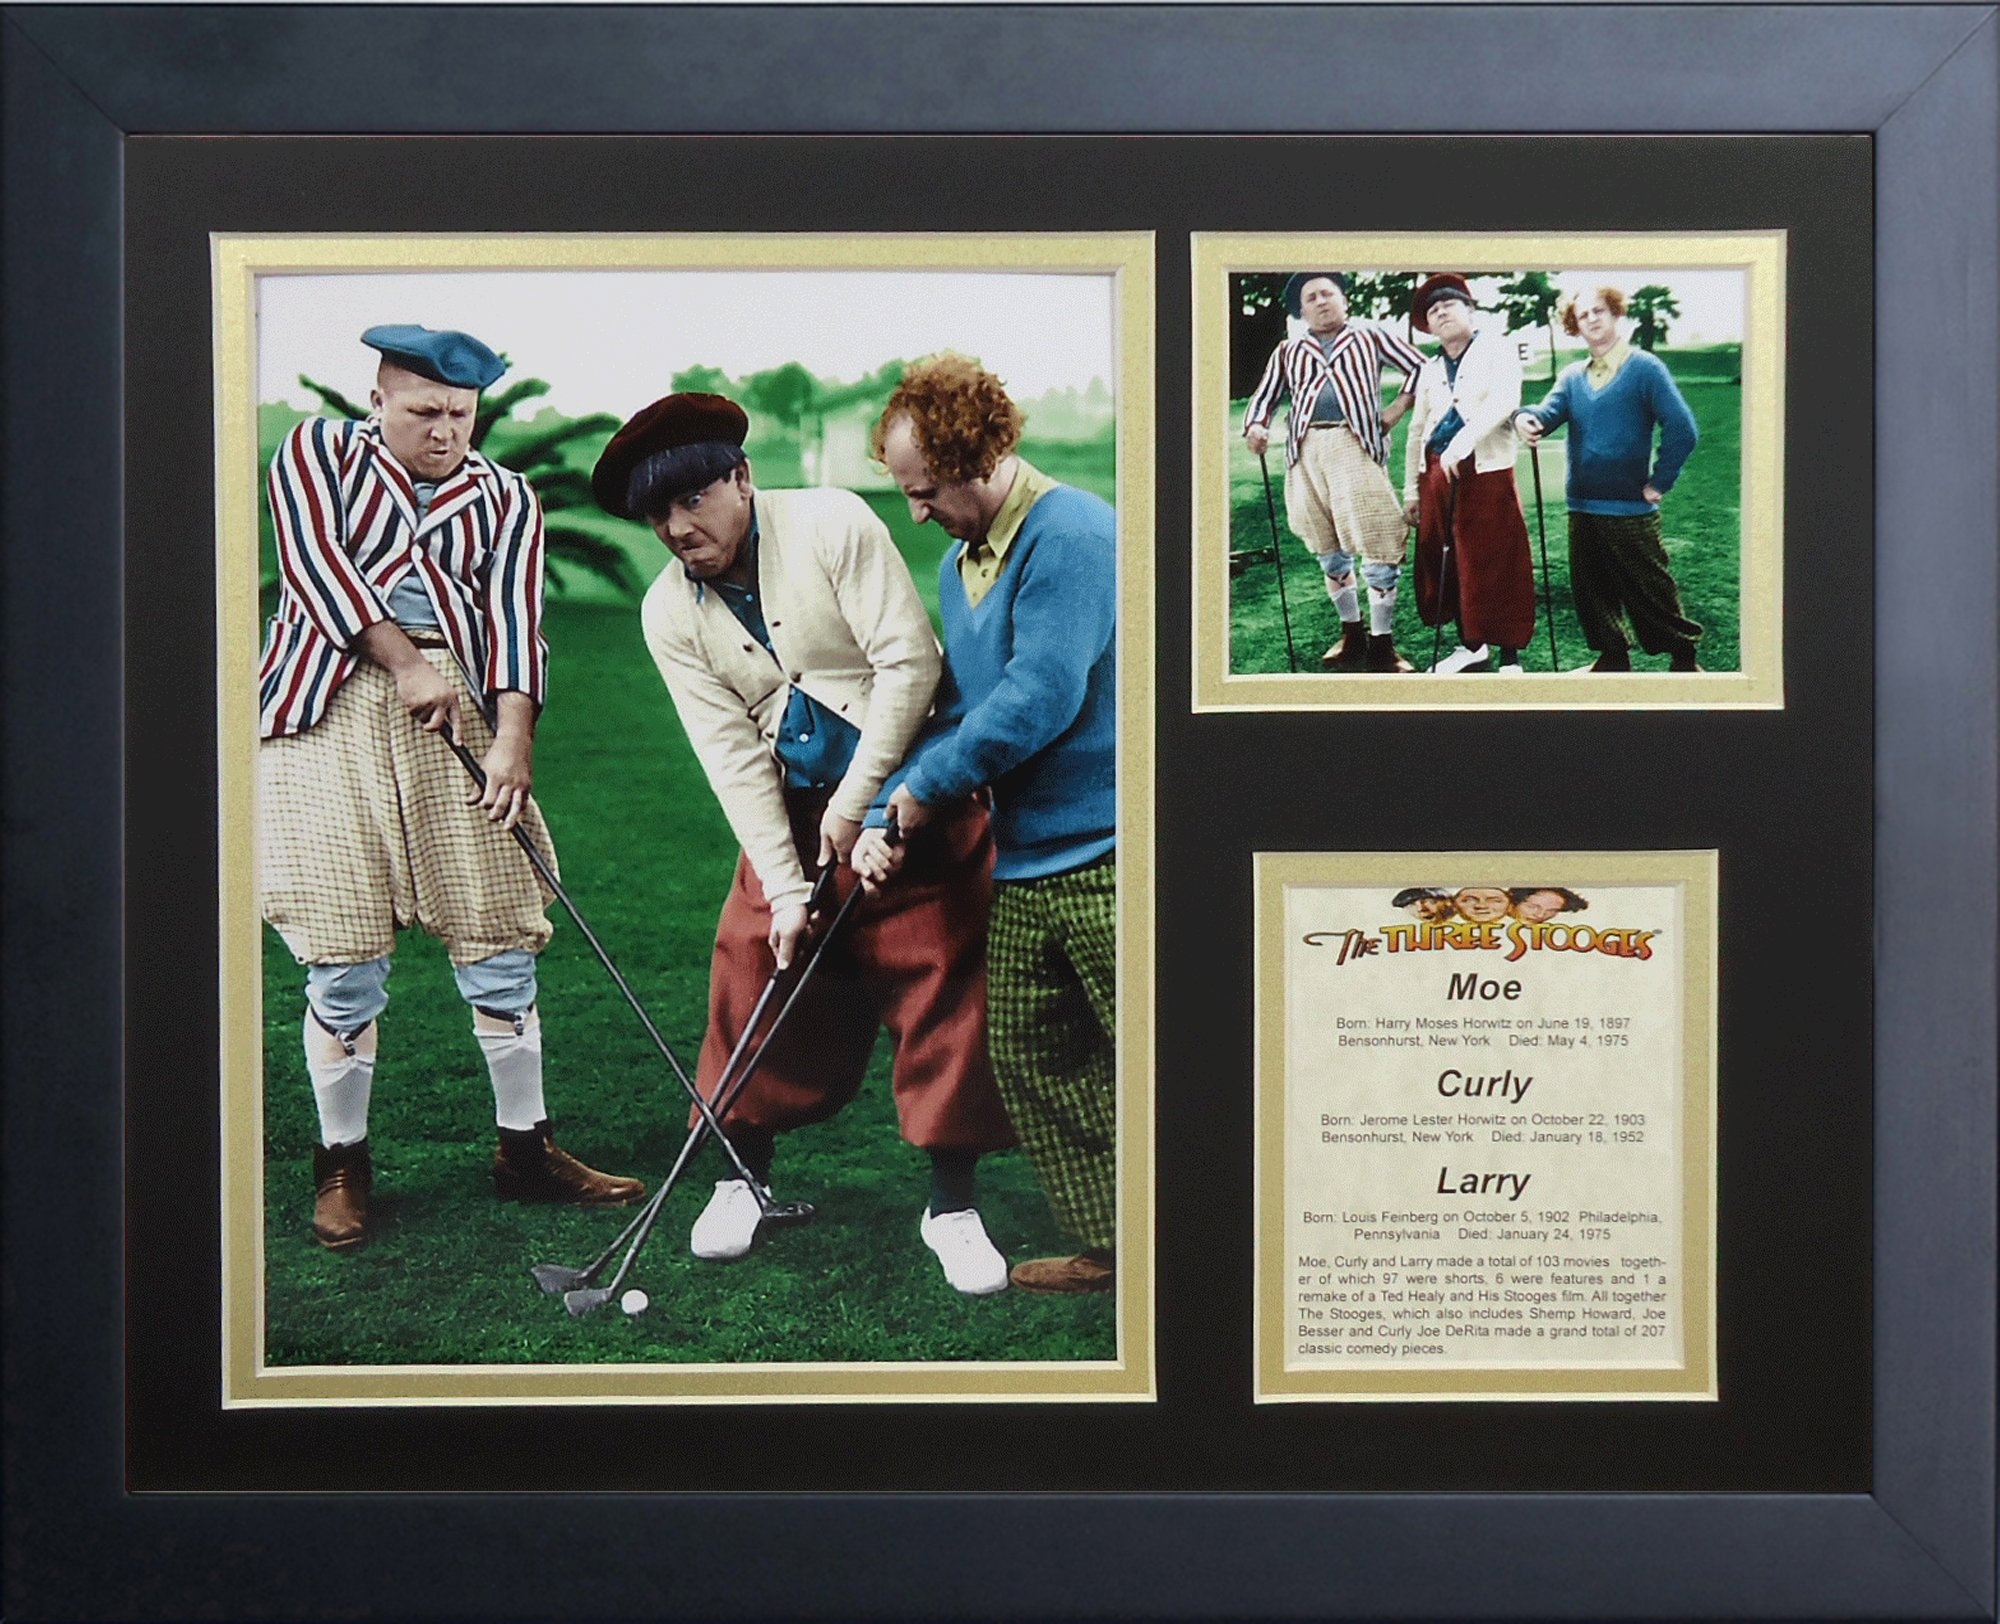 Legends Never Die The Three Stooges Golf Color Framed Photo Collage, 11x14-Inch by Legends Never Die